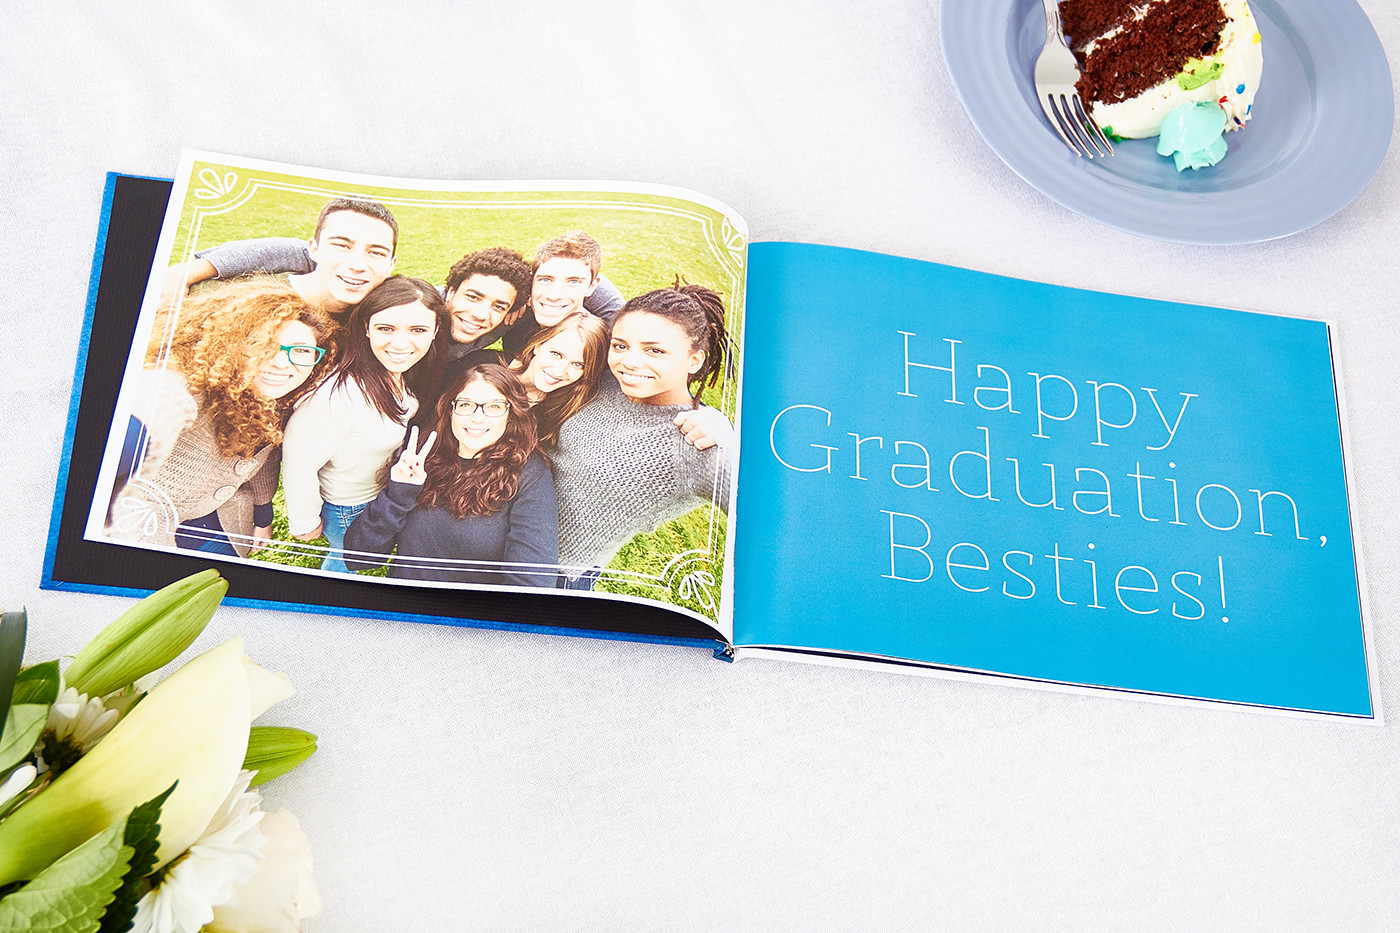 Photo Books: the perfect graduation gifts